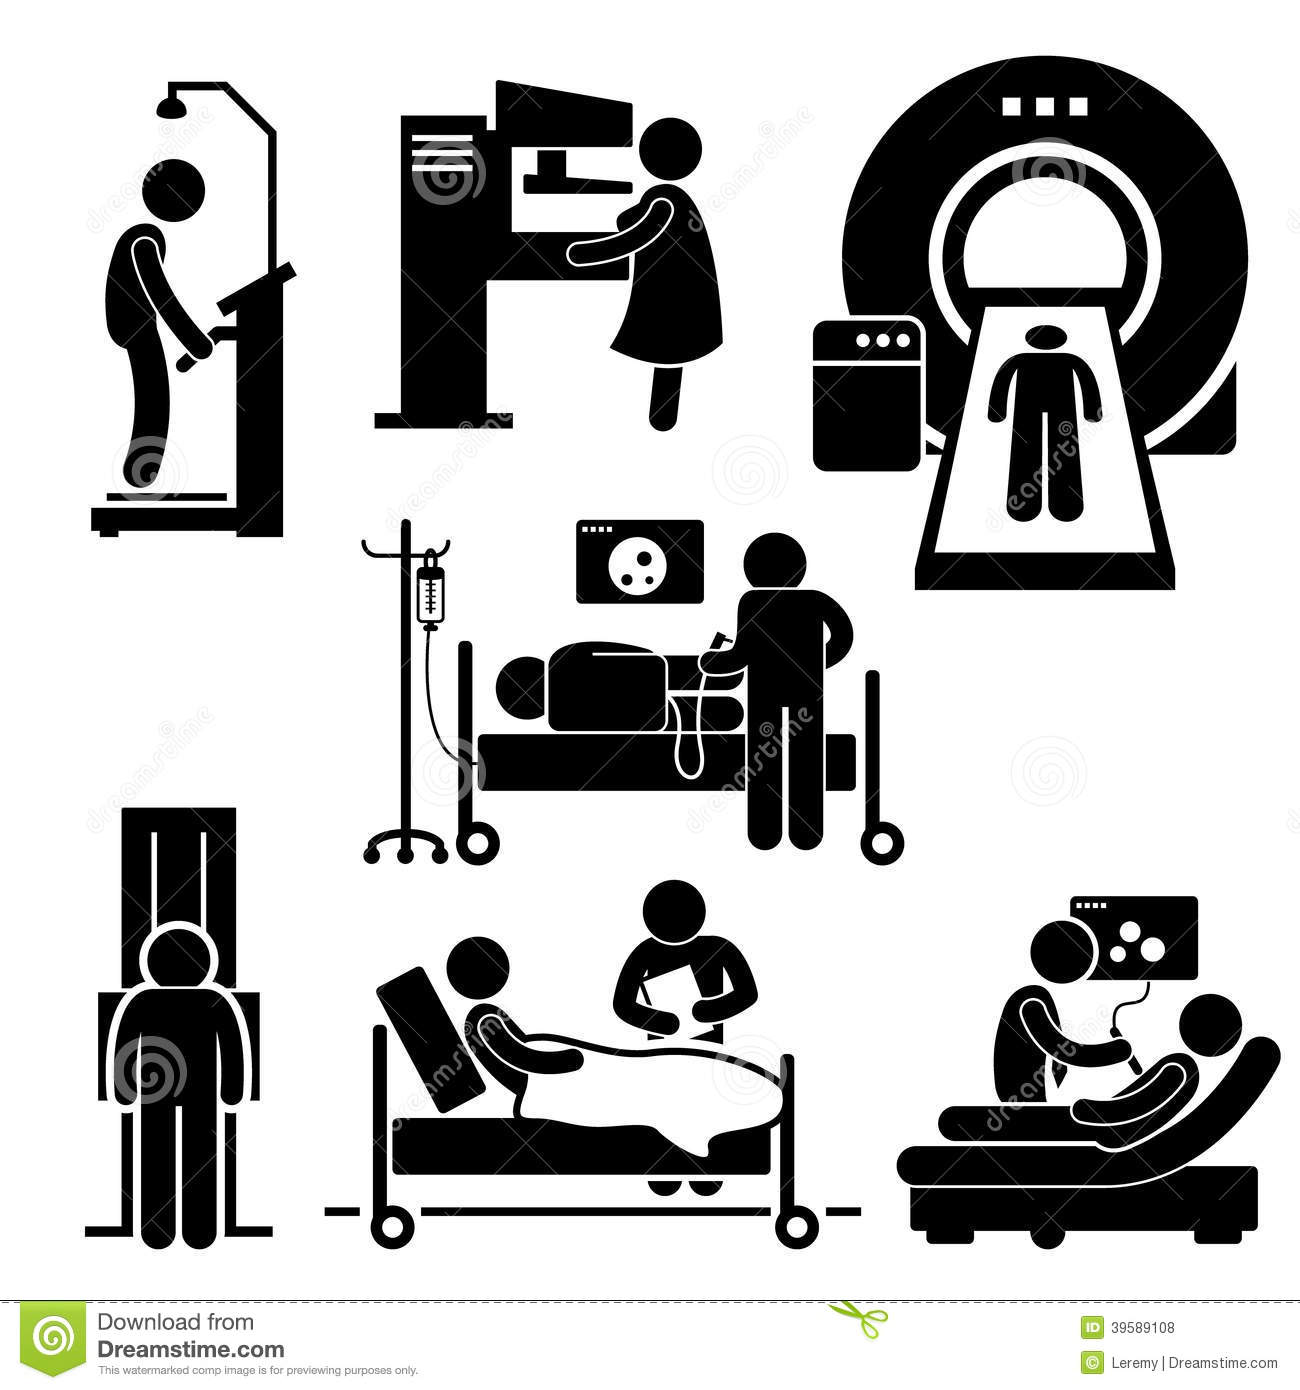 Ct Scan Clipart